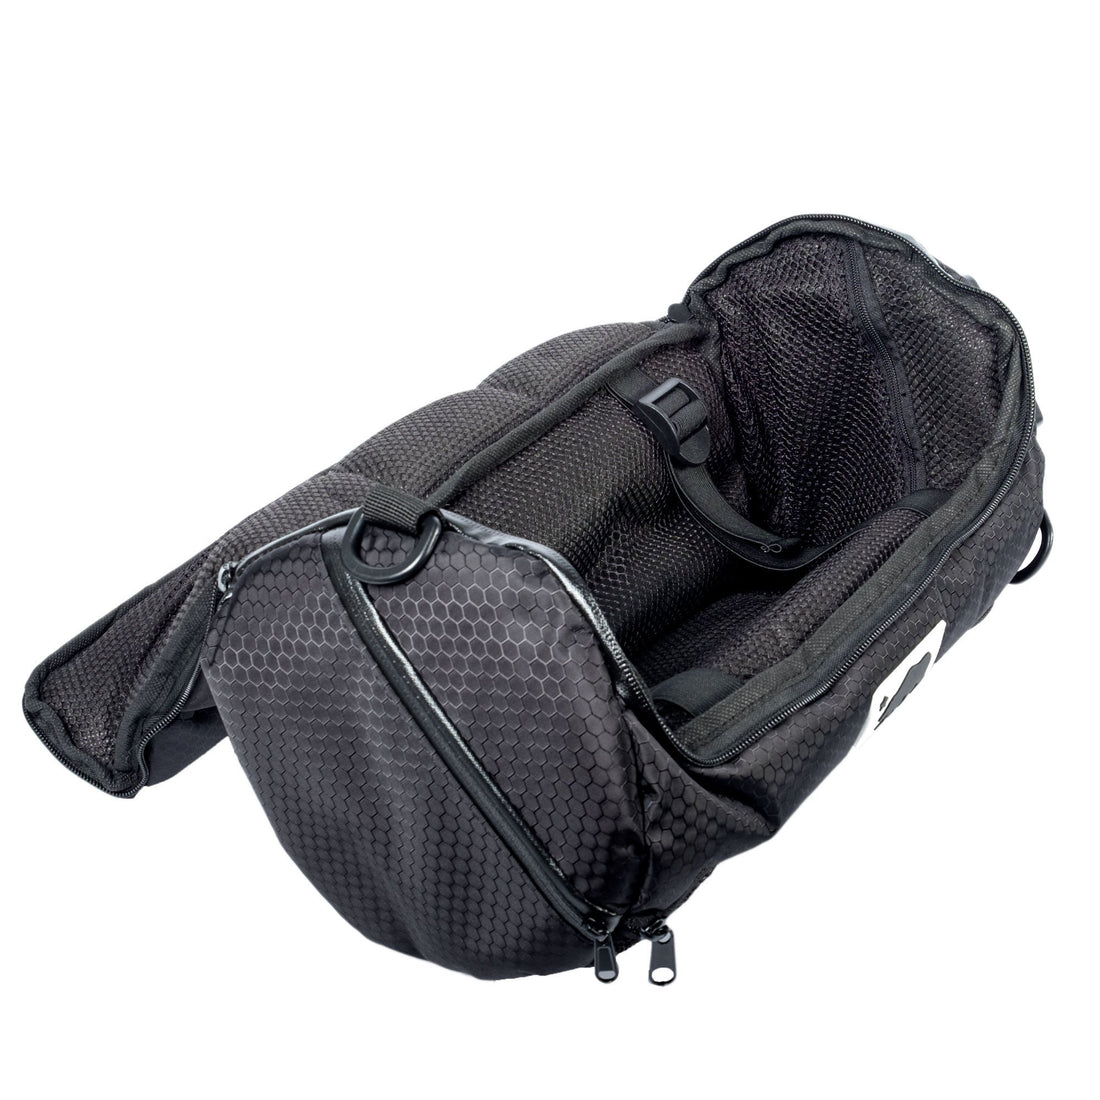 Cali Bags 12in Smell Proof Duffle w/Locking Zipper - 420 Science - The most trusted online smoke shop.